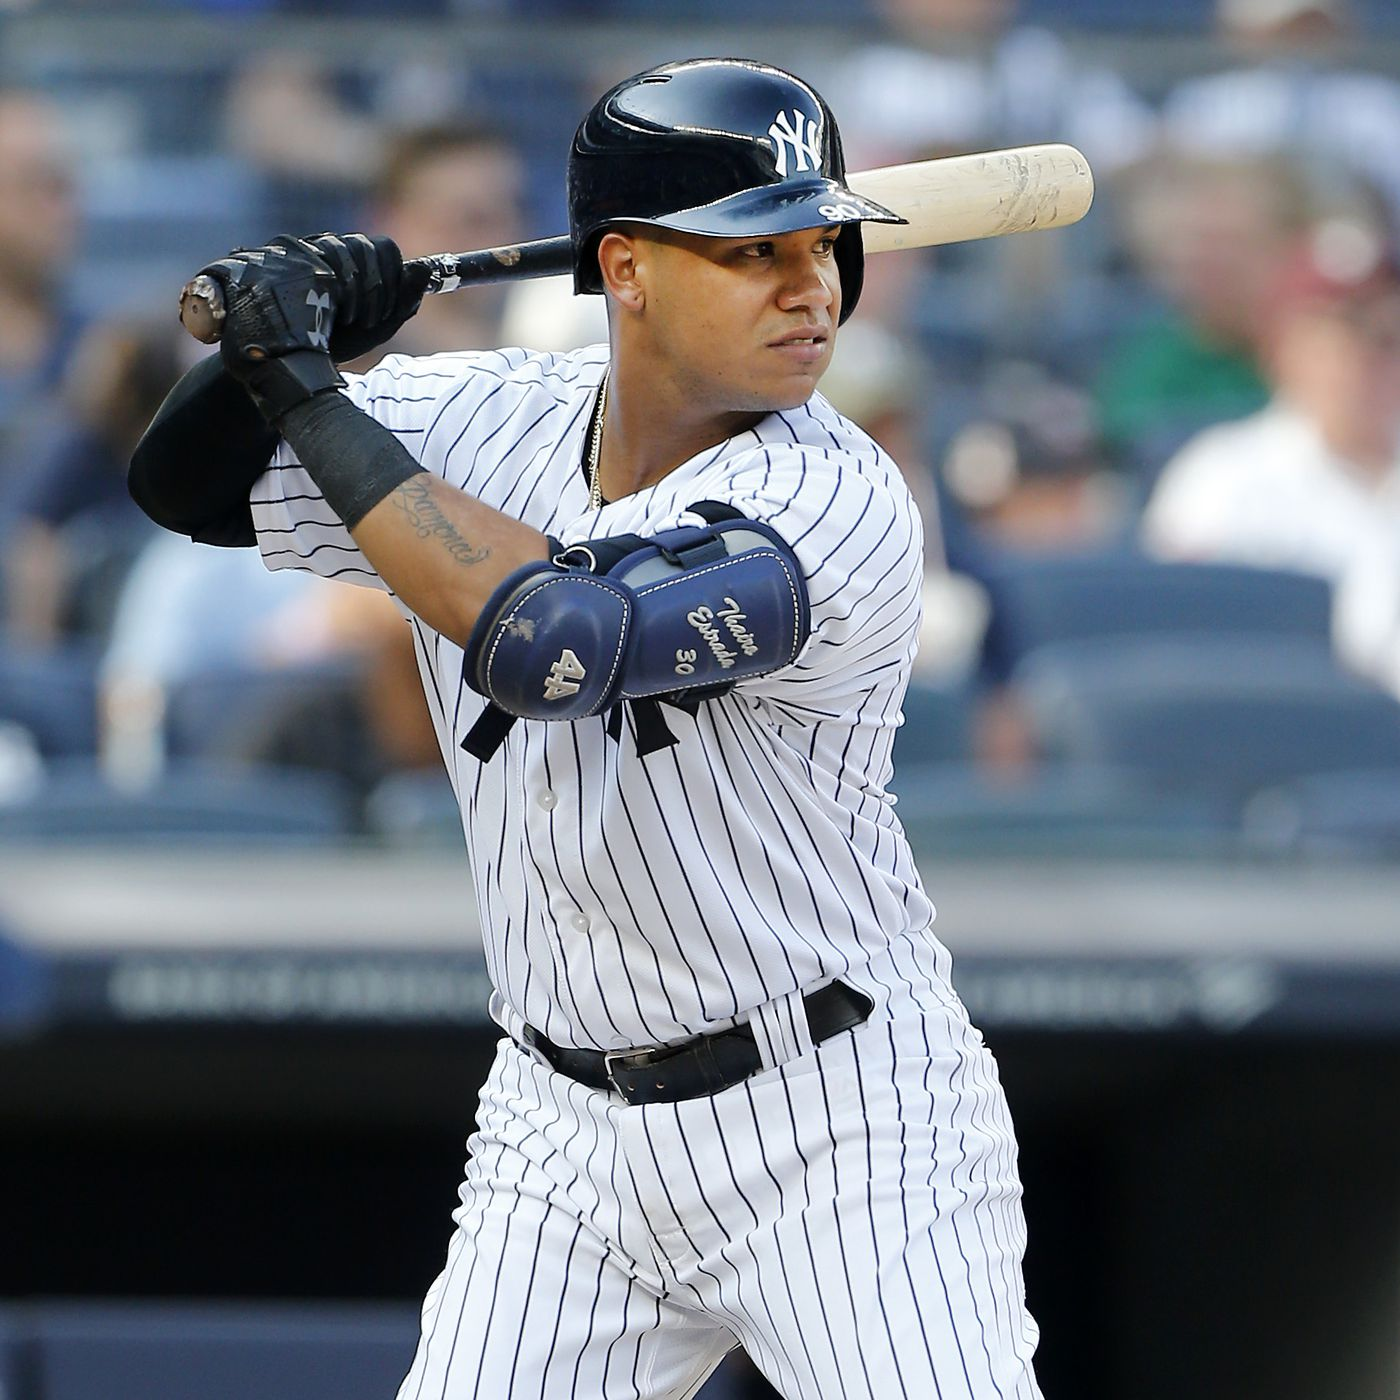 Thairo Estrada could play an important role for the Yankees in 2020 -  Pinstripe Alley